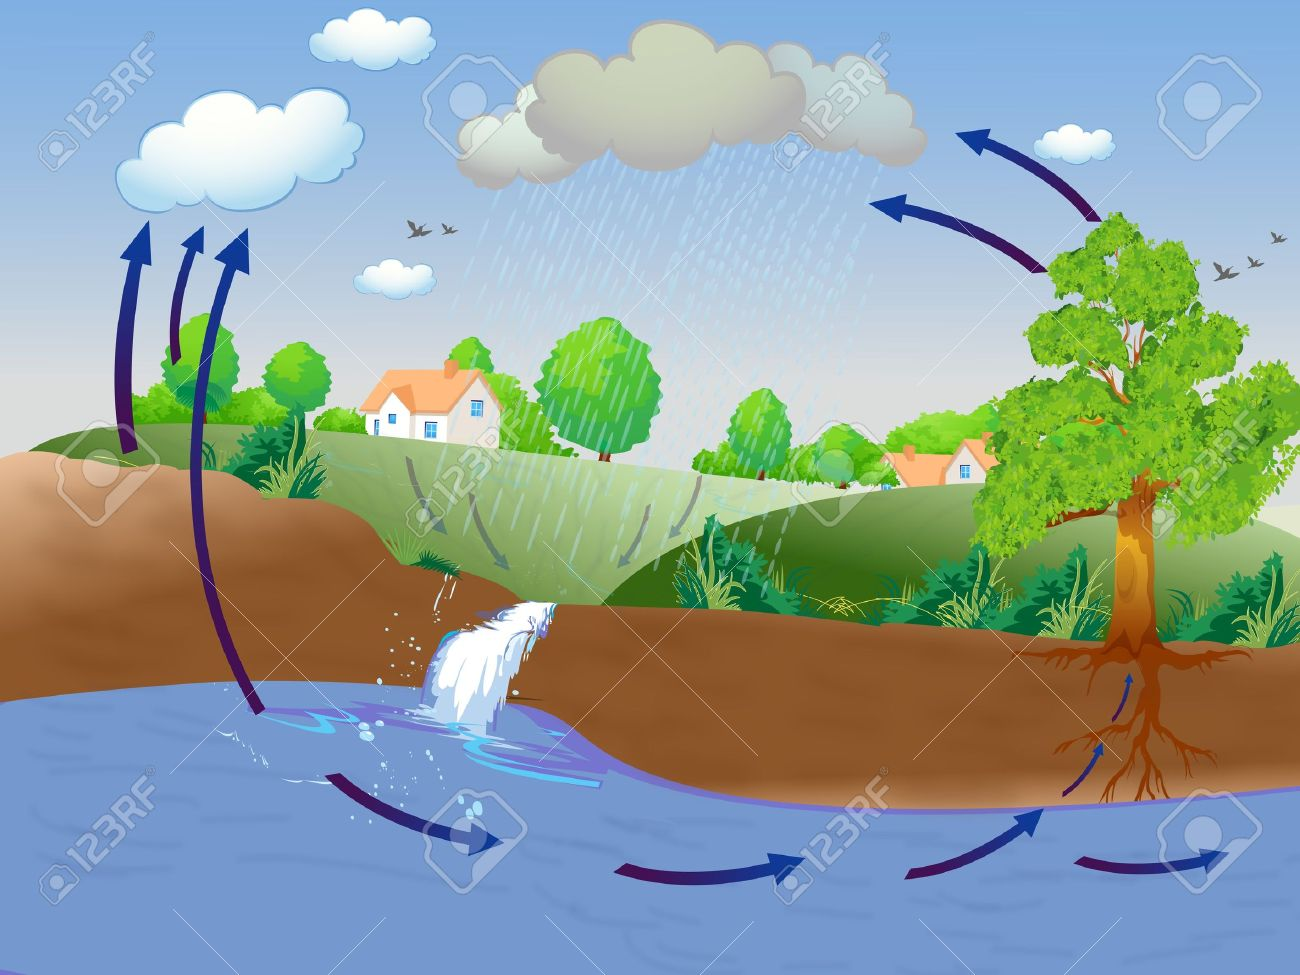 Water cycle clipart frame png royalty free Water cycle clipart frame - ClipartNinja png royalty free